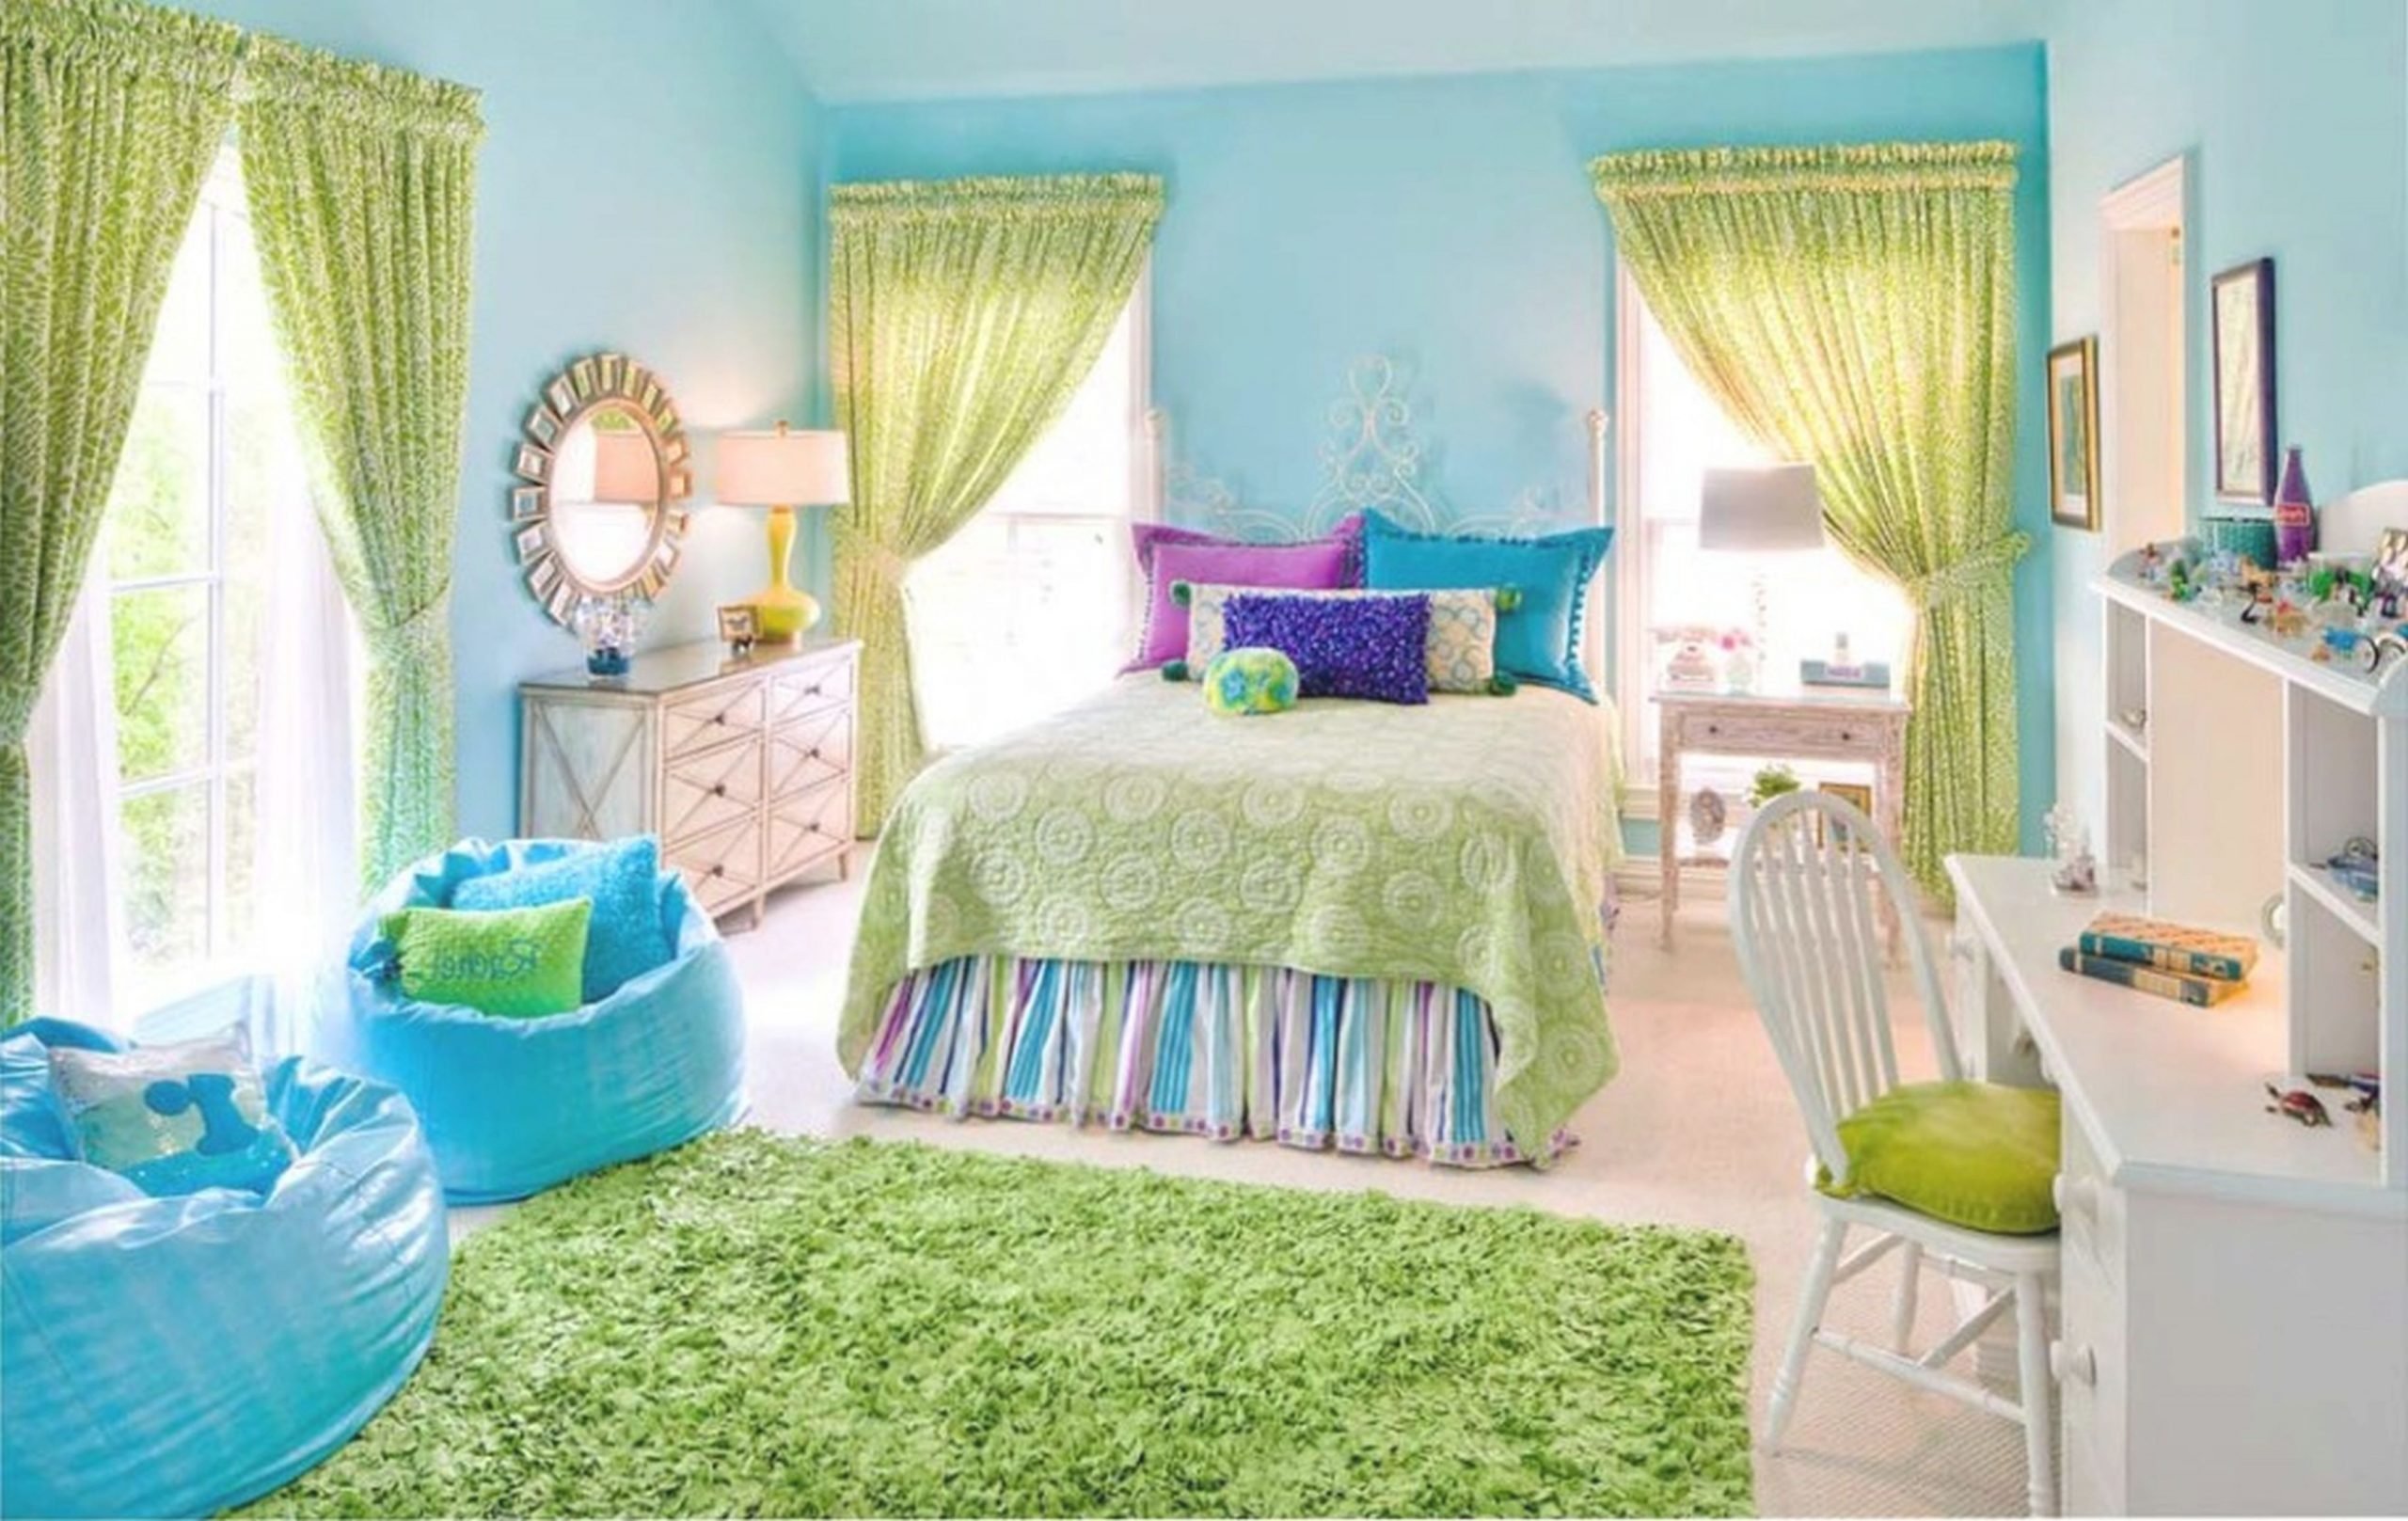 Kids Bedroom, : Gorgeous Blue And Green Kid Bedroom Design in Inspirational Blue And Green Bedroom Decorating Ideas